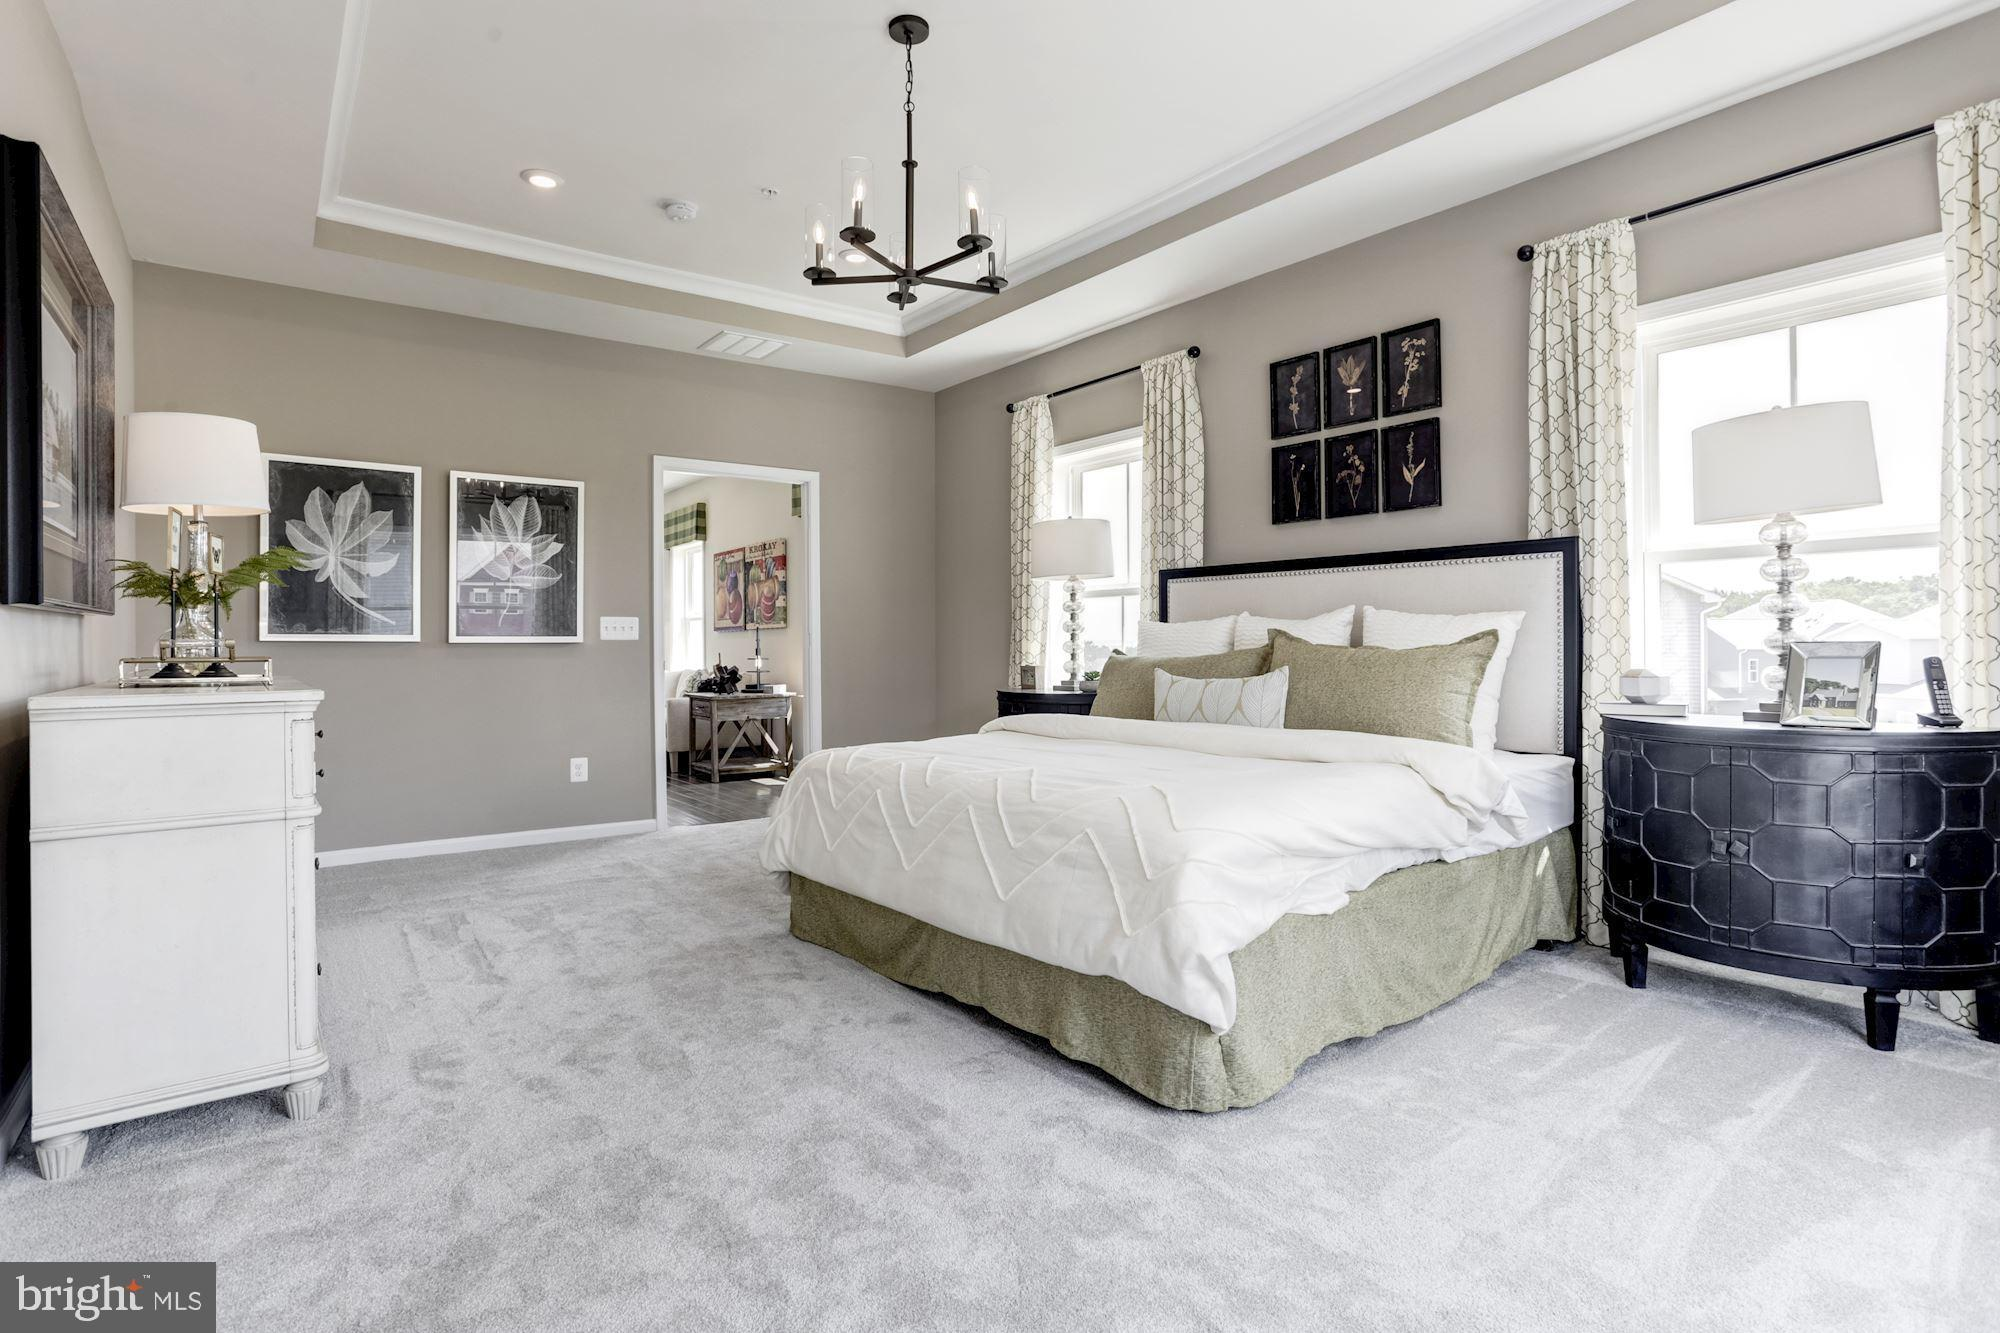 Bedroom featured in the Duvall By Dream Finders Homes in Washington, MD